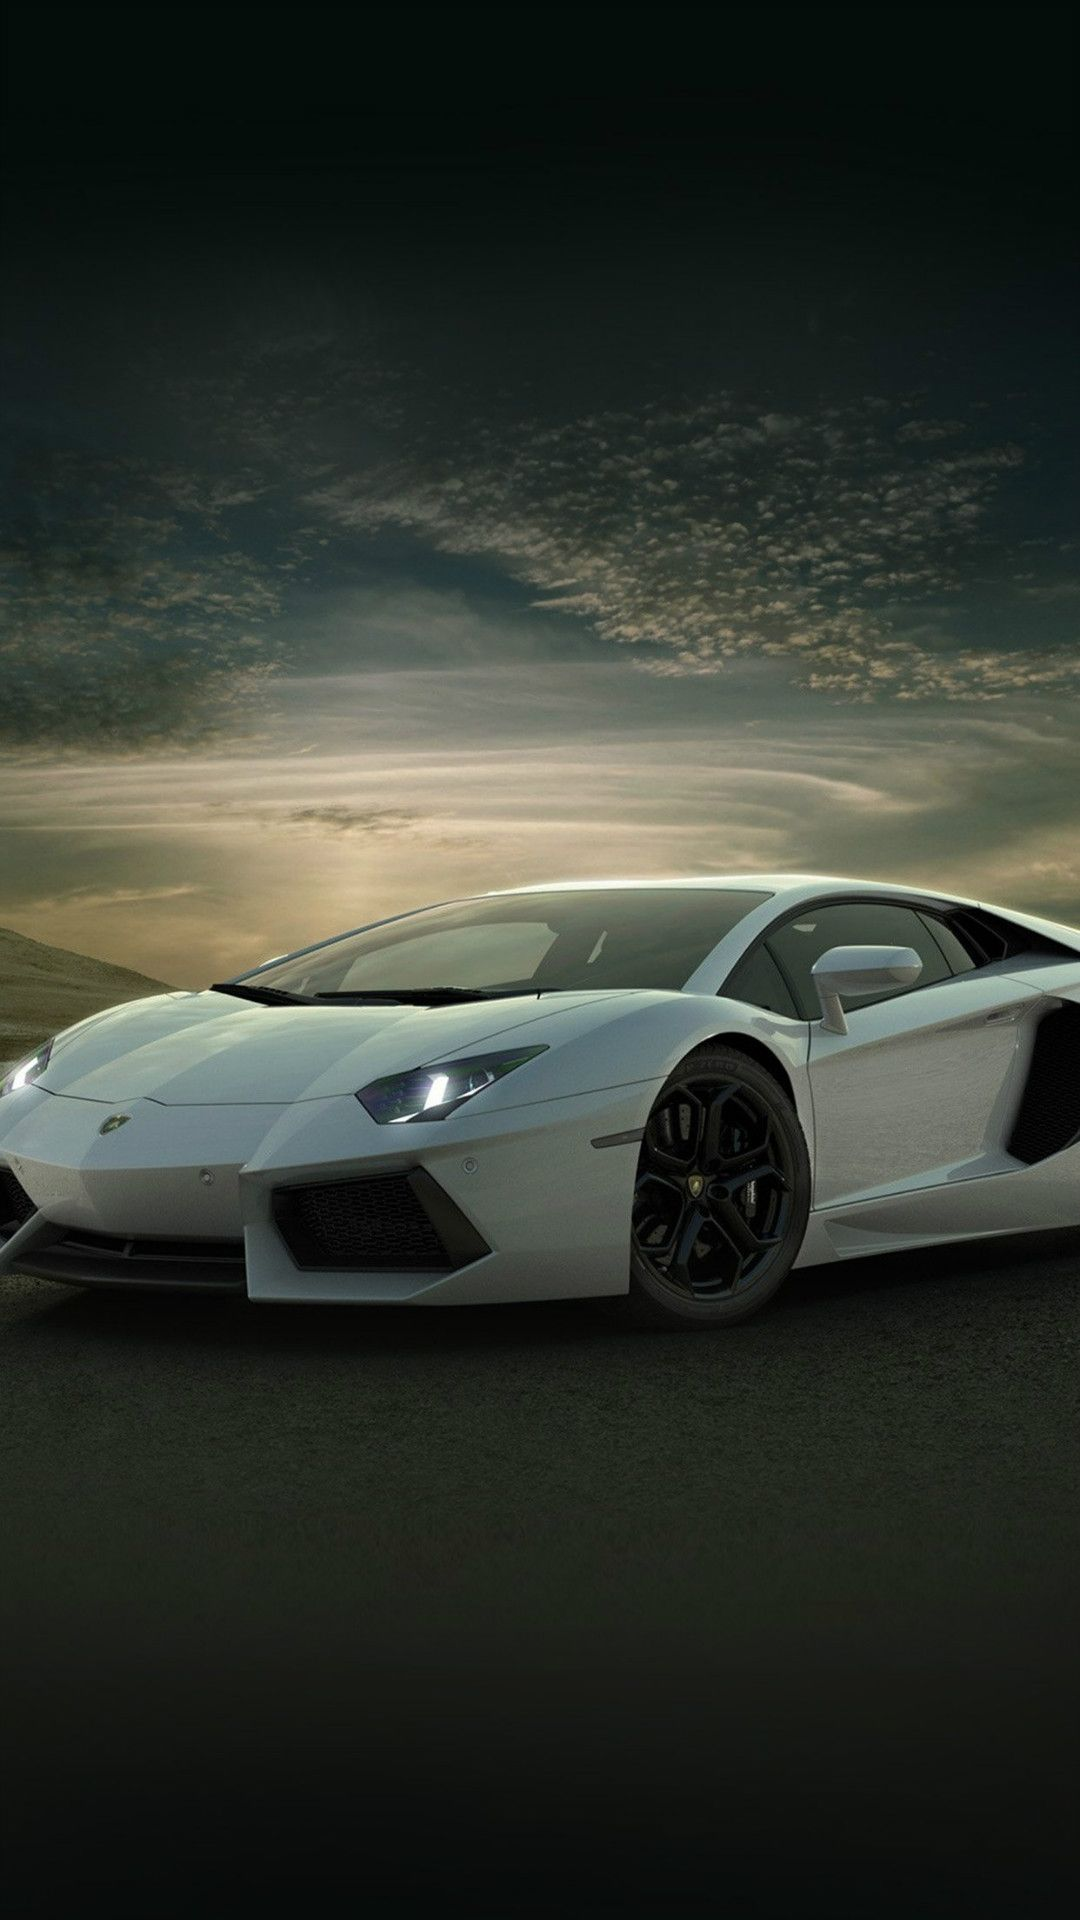 Delicieux Lamborghini Car Exotic White Art #iPhone #7 #wallpaper